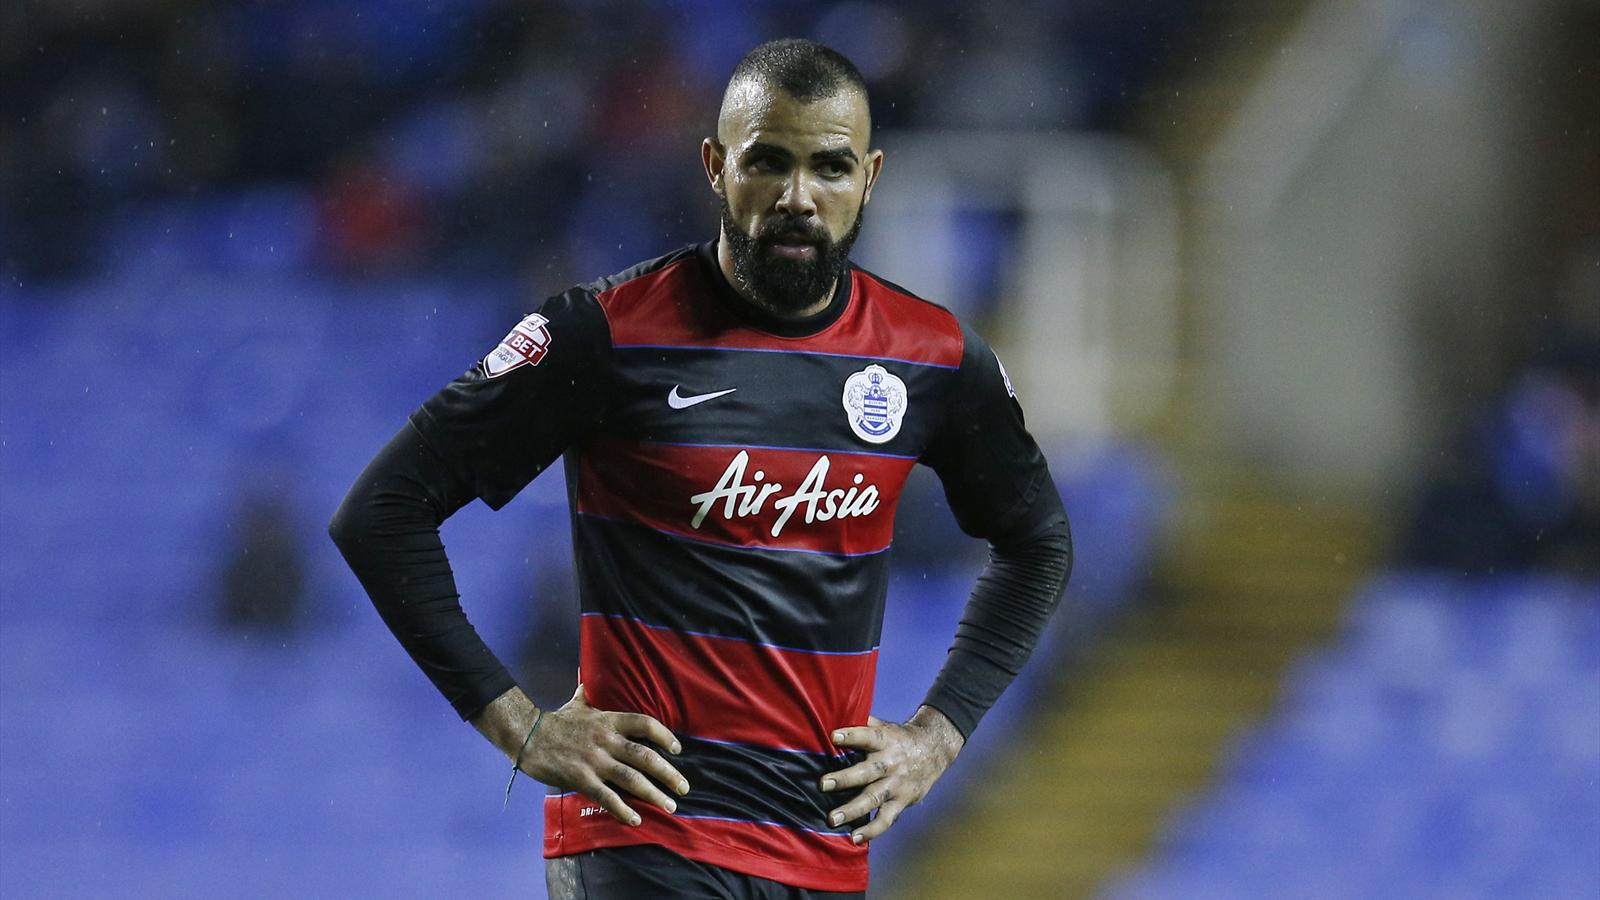 West Brom sign Sandro on loan from QPR - Premier League ...